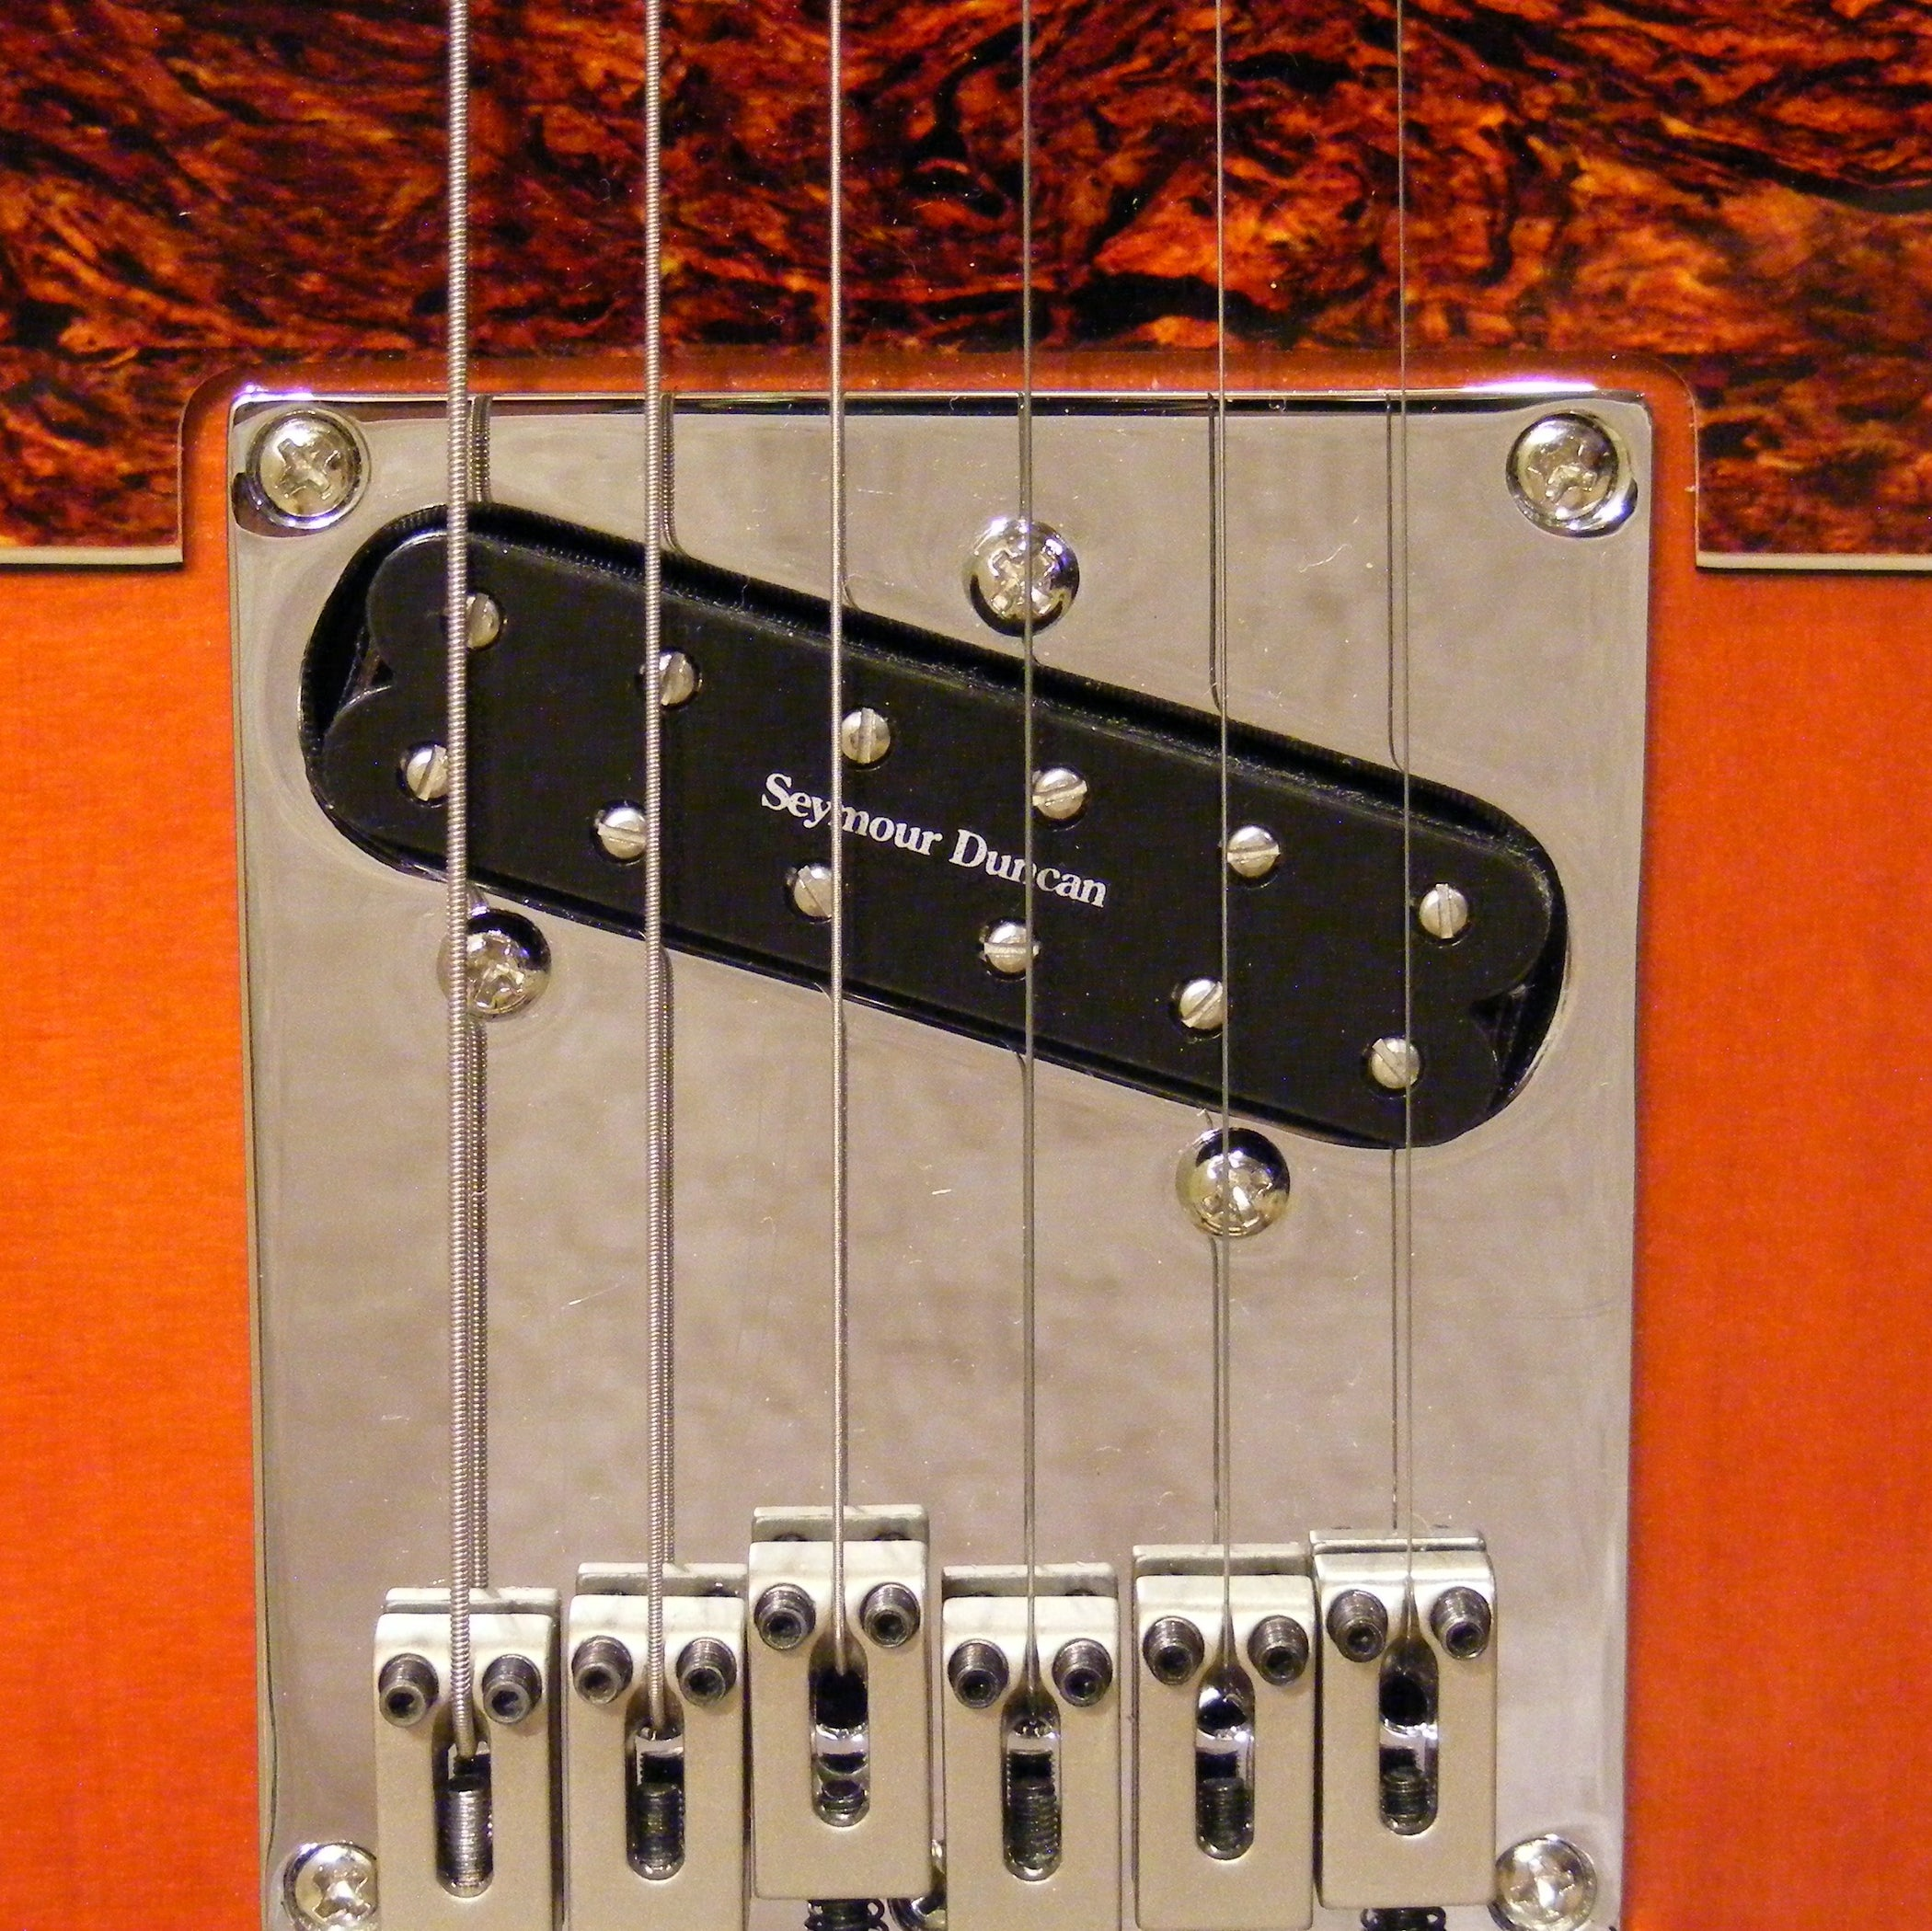 Replacing The Pickups In Your Guitar 17 Steps With Pictures Notes On Neck Diagram Car Tuning